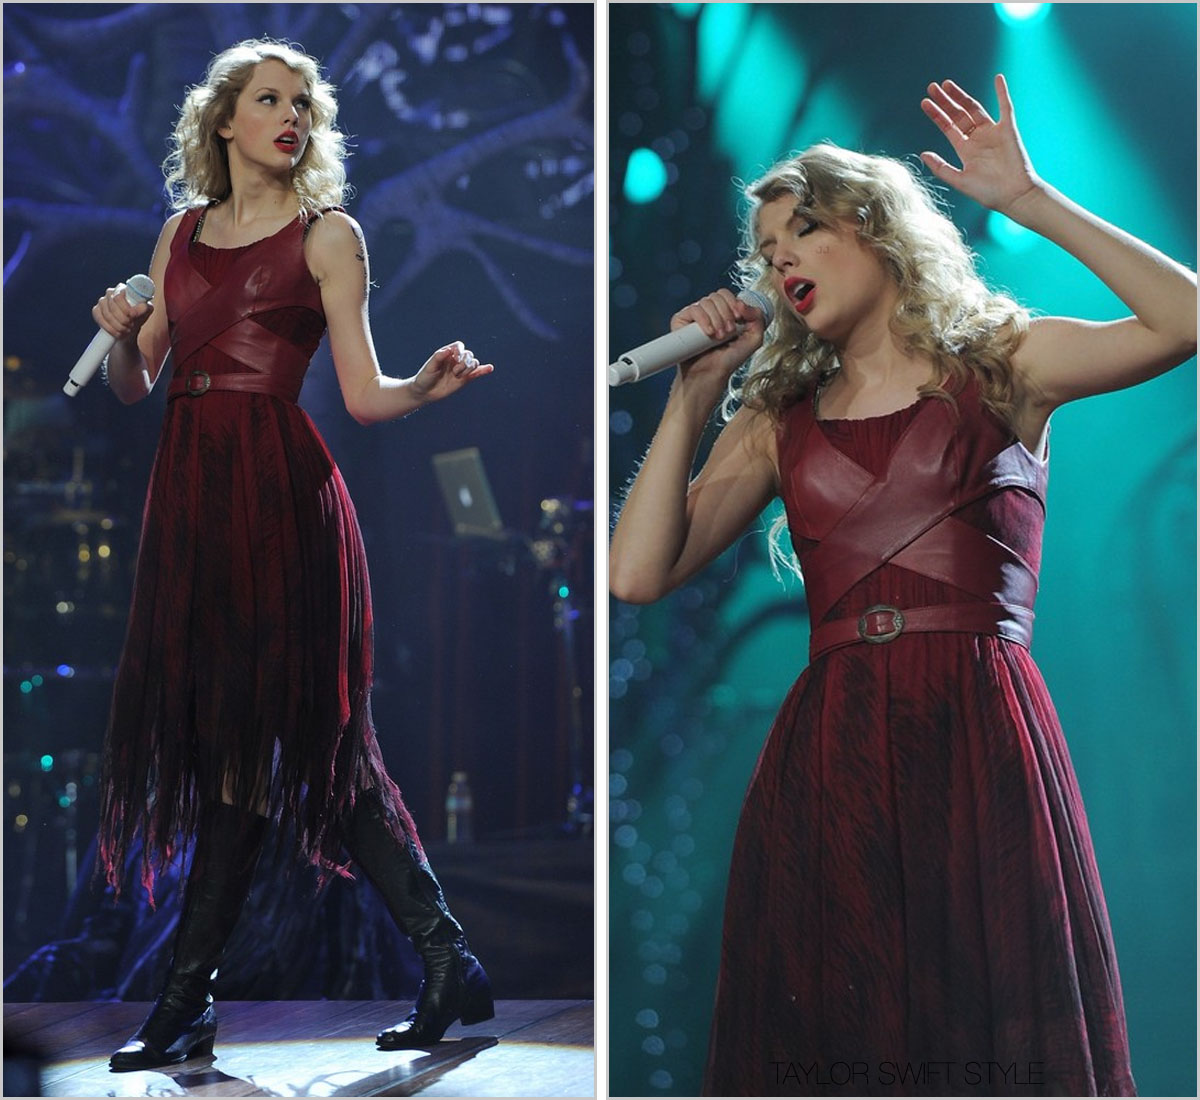 Taylor Swift - Speak Now tour dress